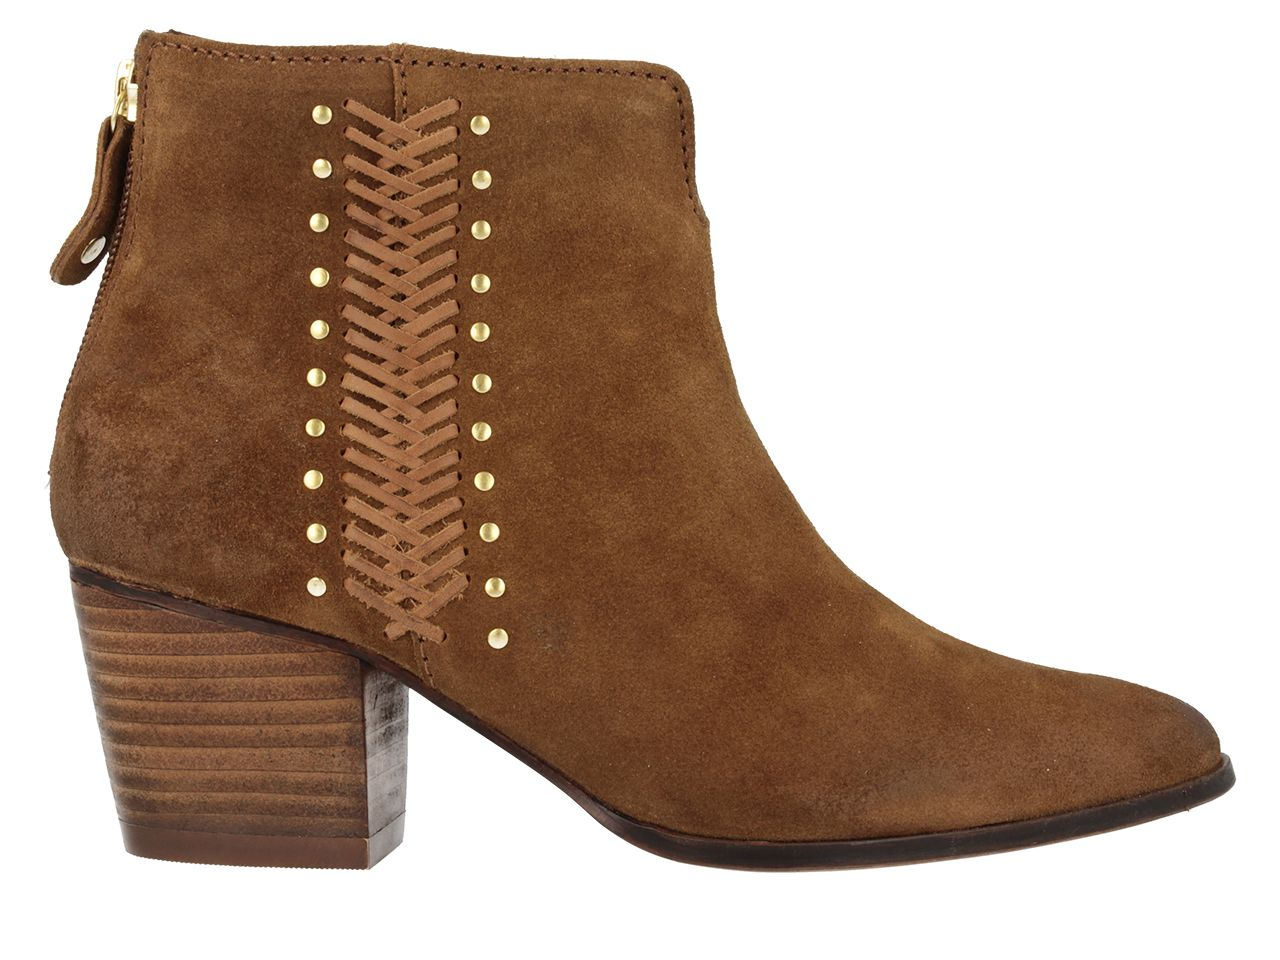 Gioseppo Gioseppo Opelika ankle boots, Brown